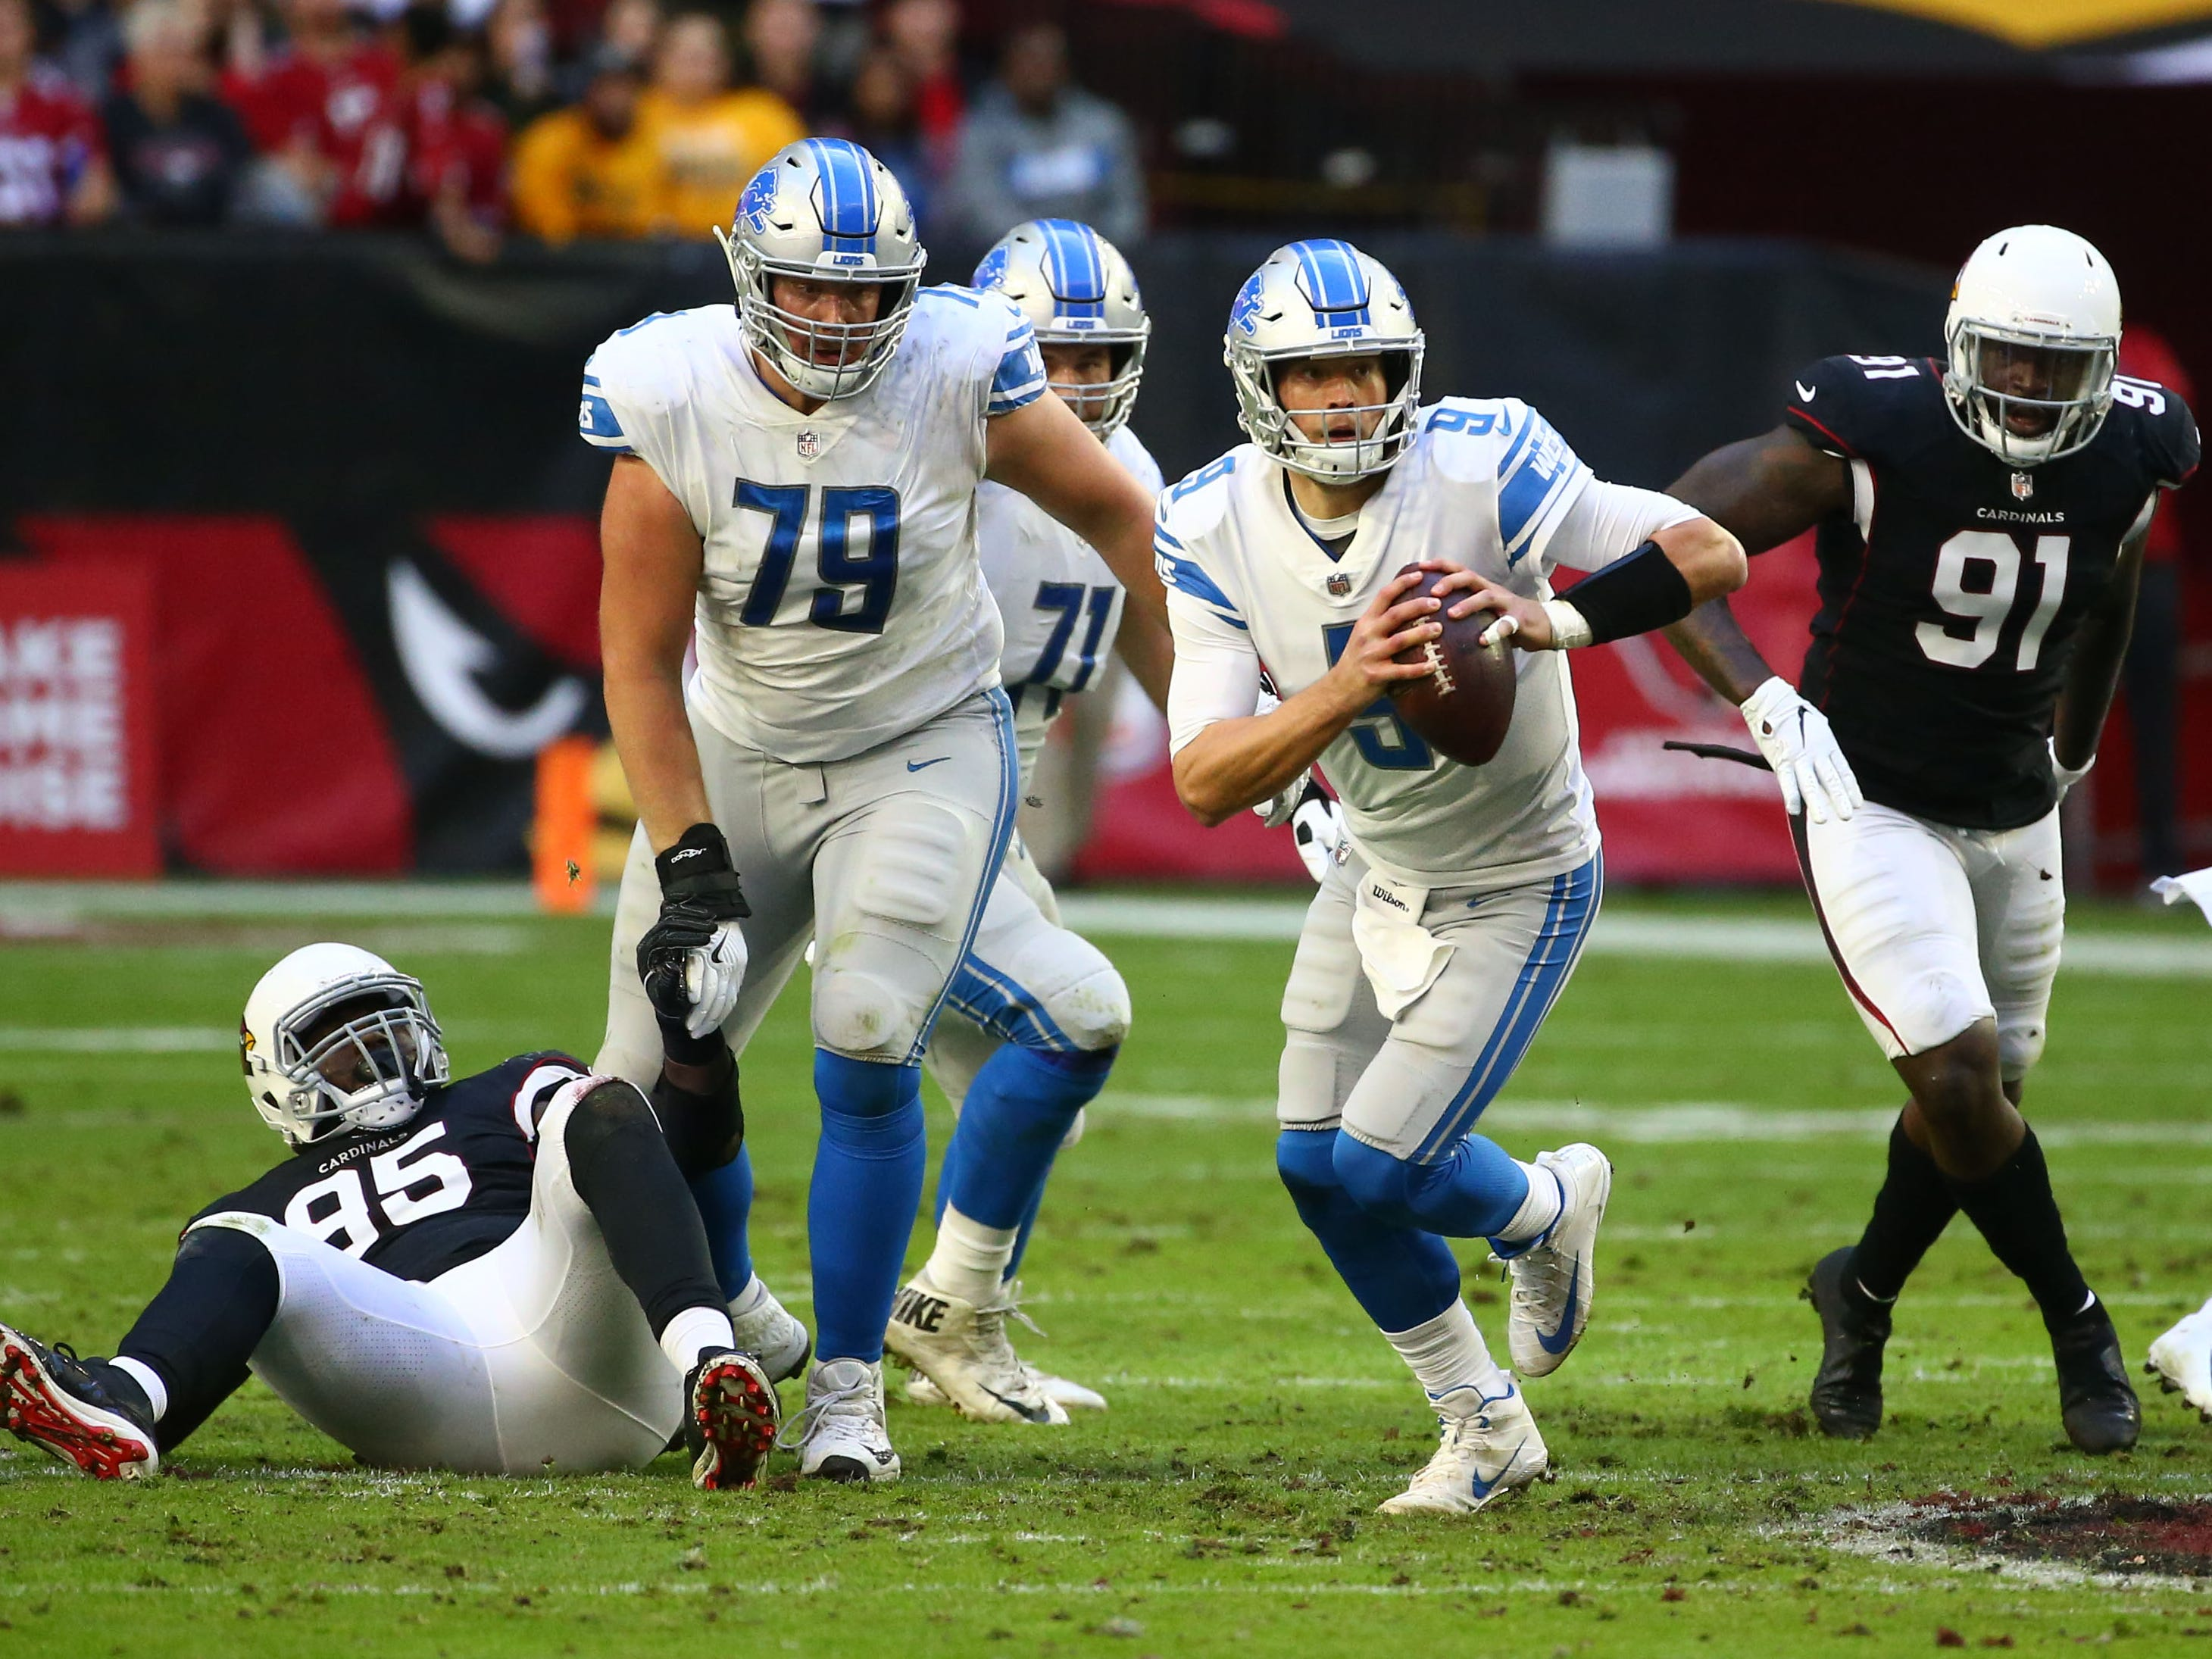 Detroit Lions quarterback Matthew Stafford runs with the ball against the Arizona Cardinals in the first half during a game on Dec. 9 at State Farm Stadium.